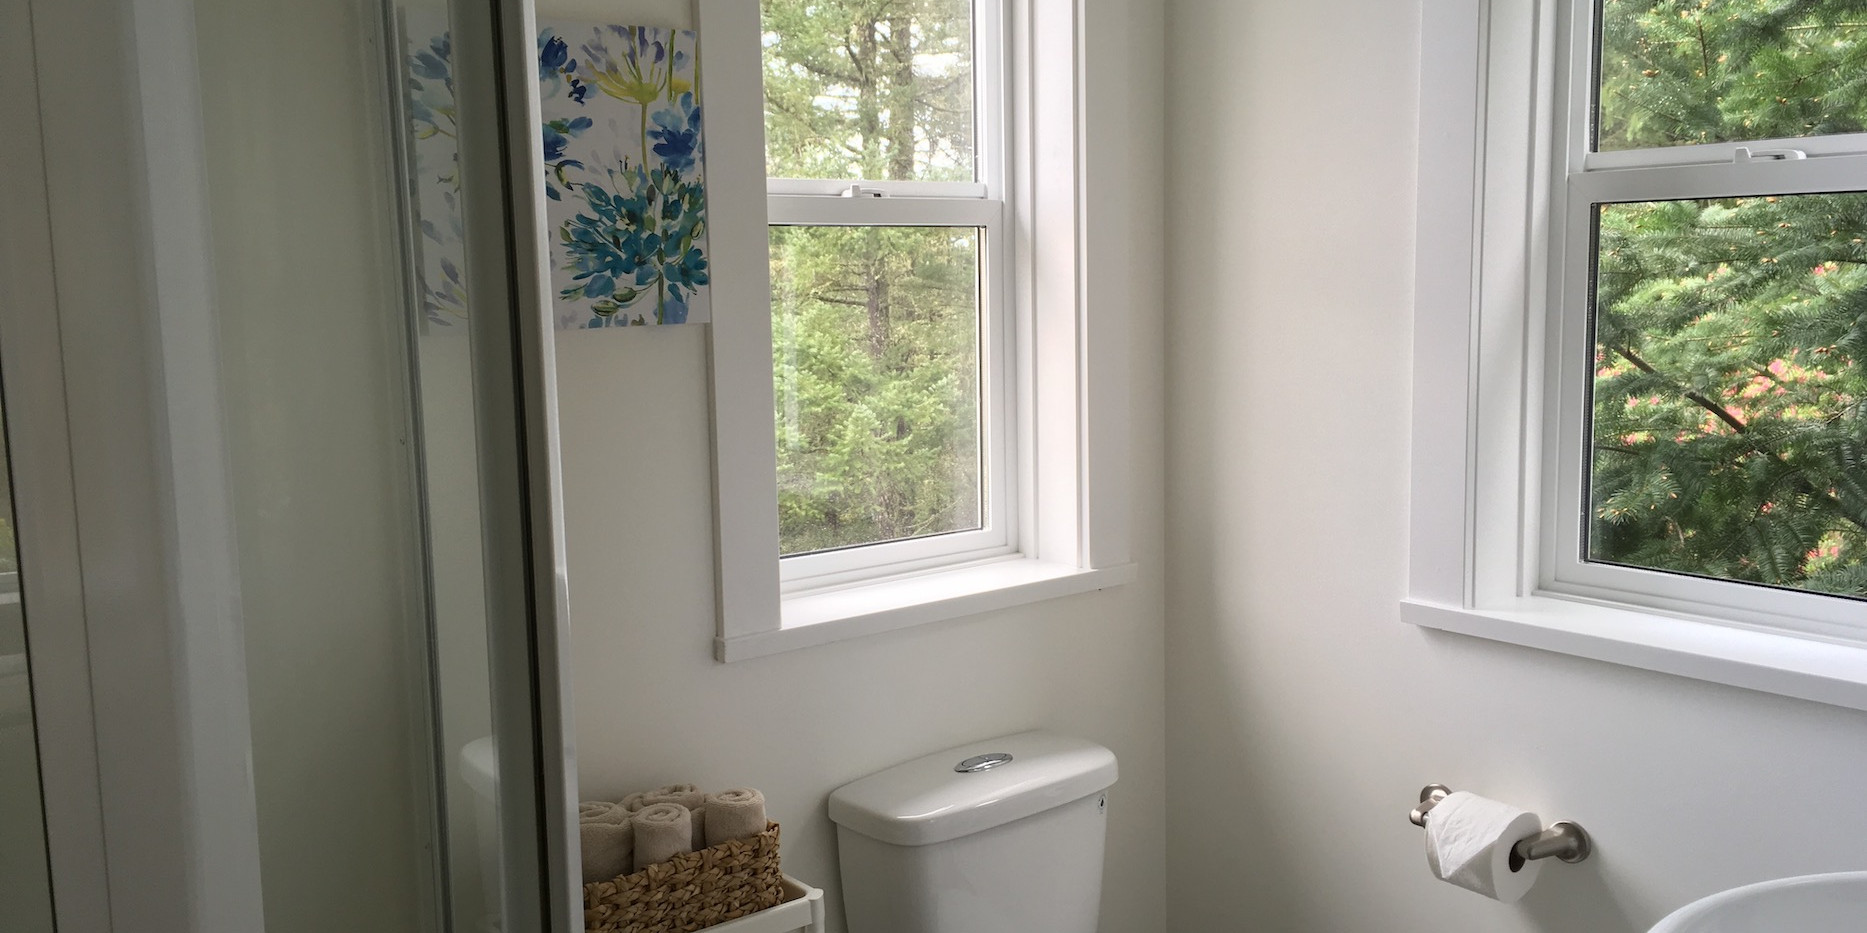 Bathroom with 2 windows in The Small House guest cottage